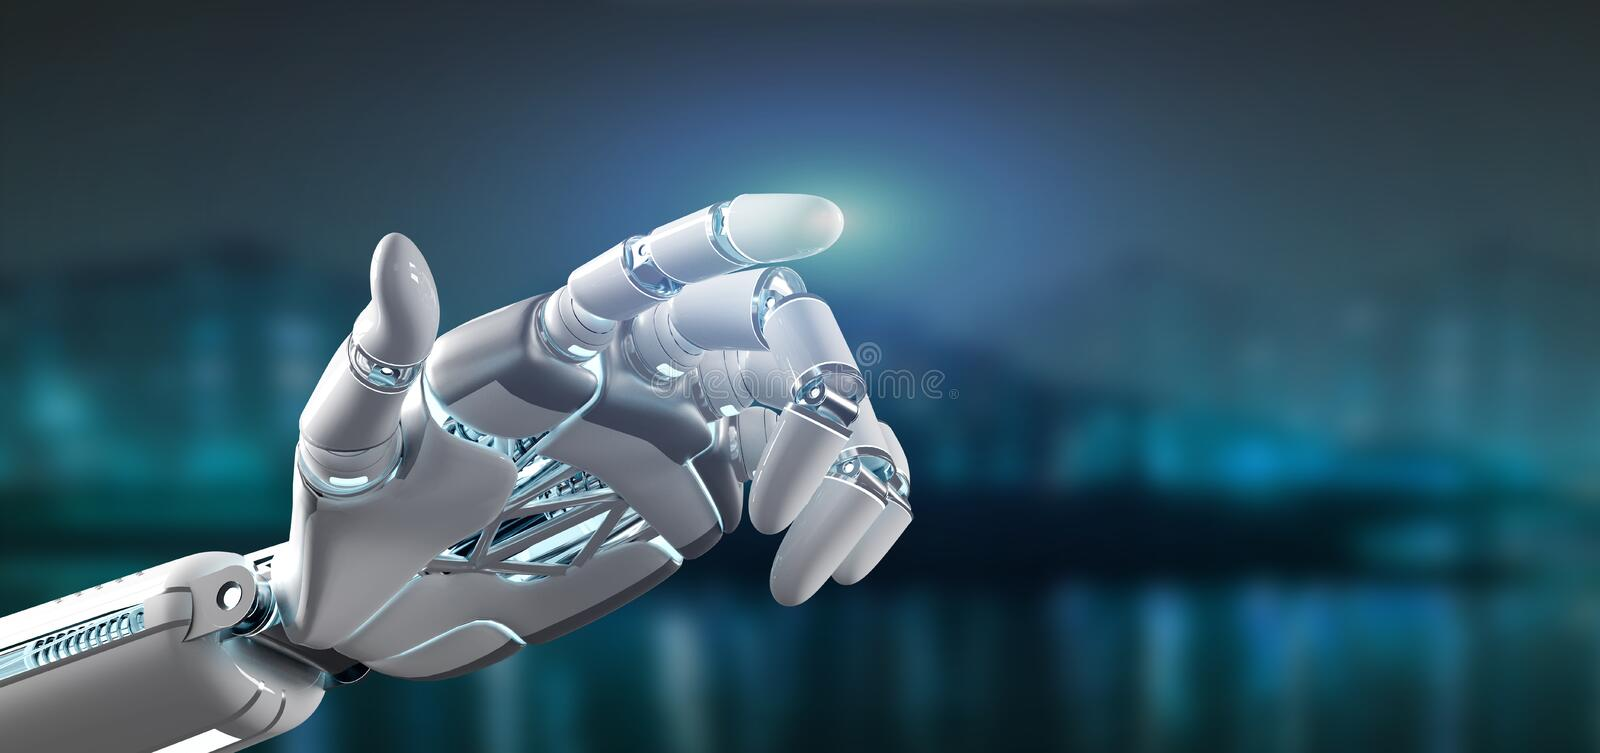 Cyborg robot hand on a city background 3d rendering. View of a Cyborg robot hand on a city background 3d rendering stock illustration